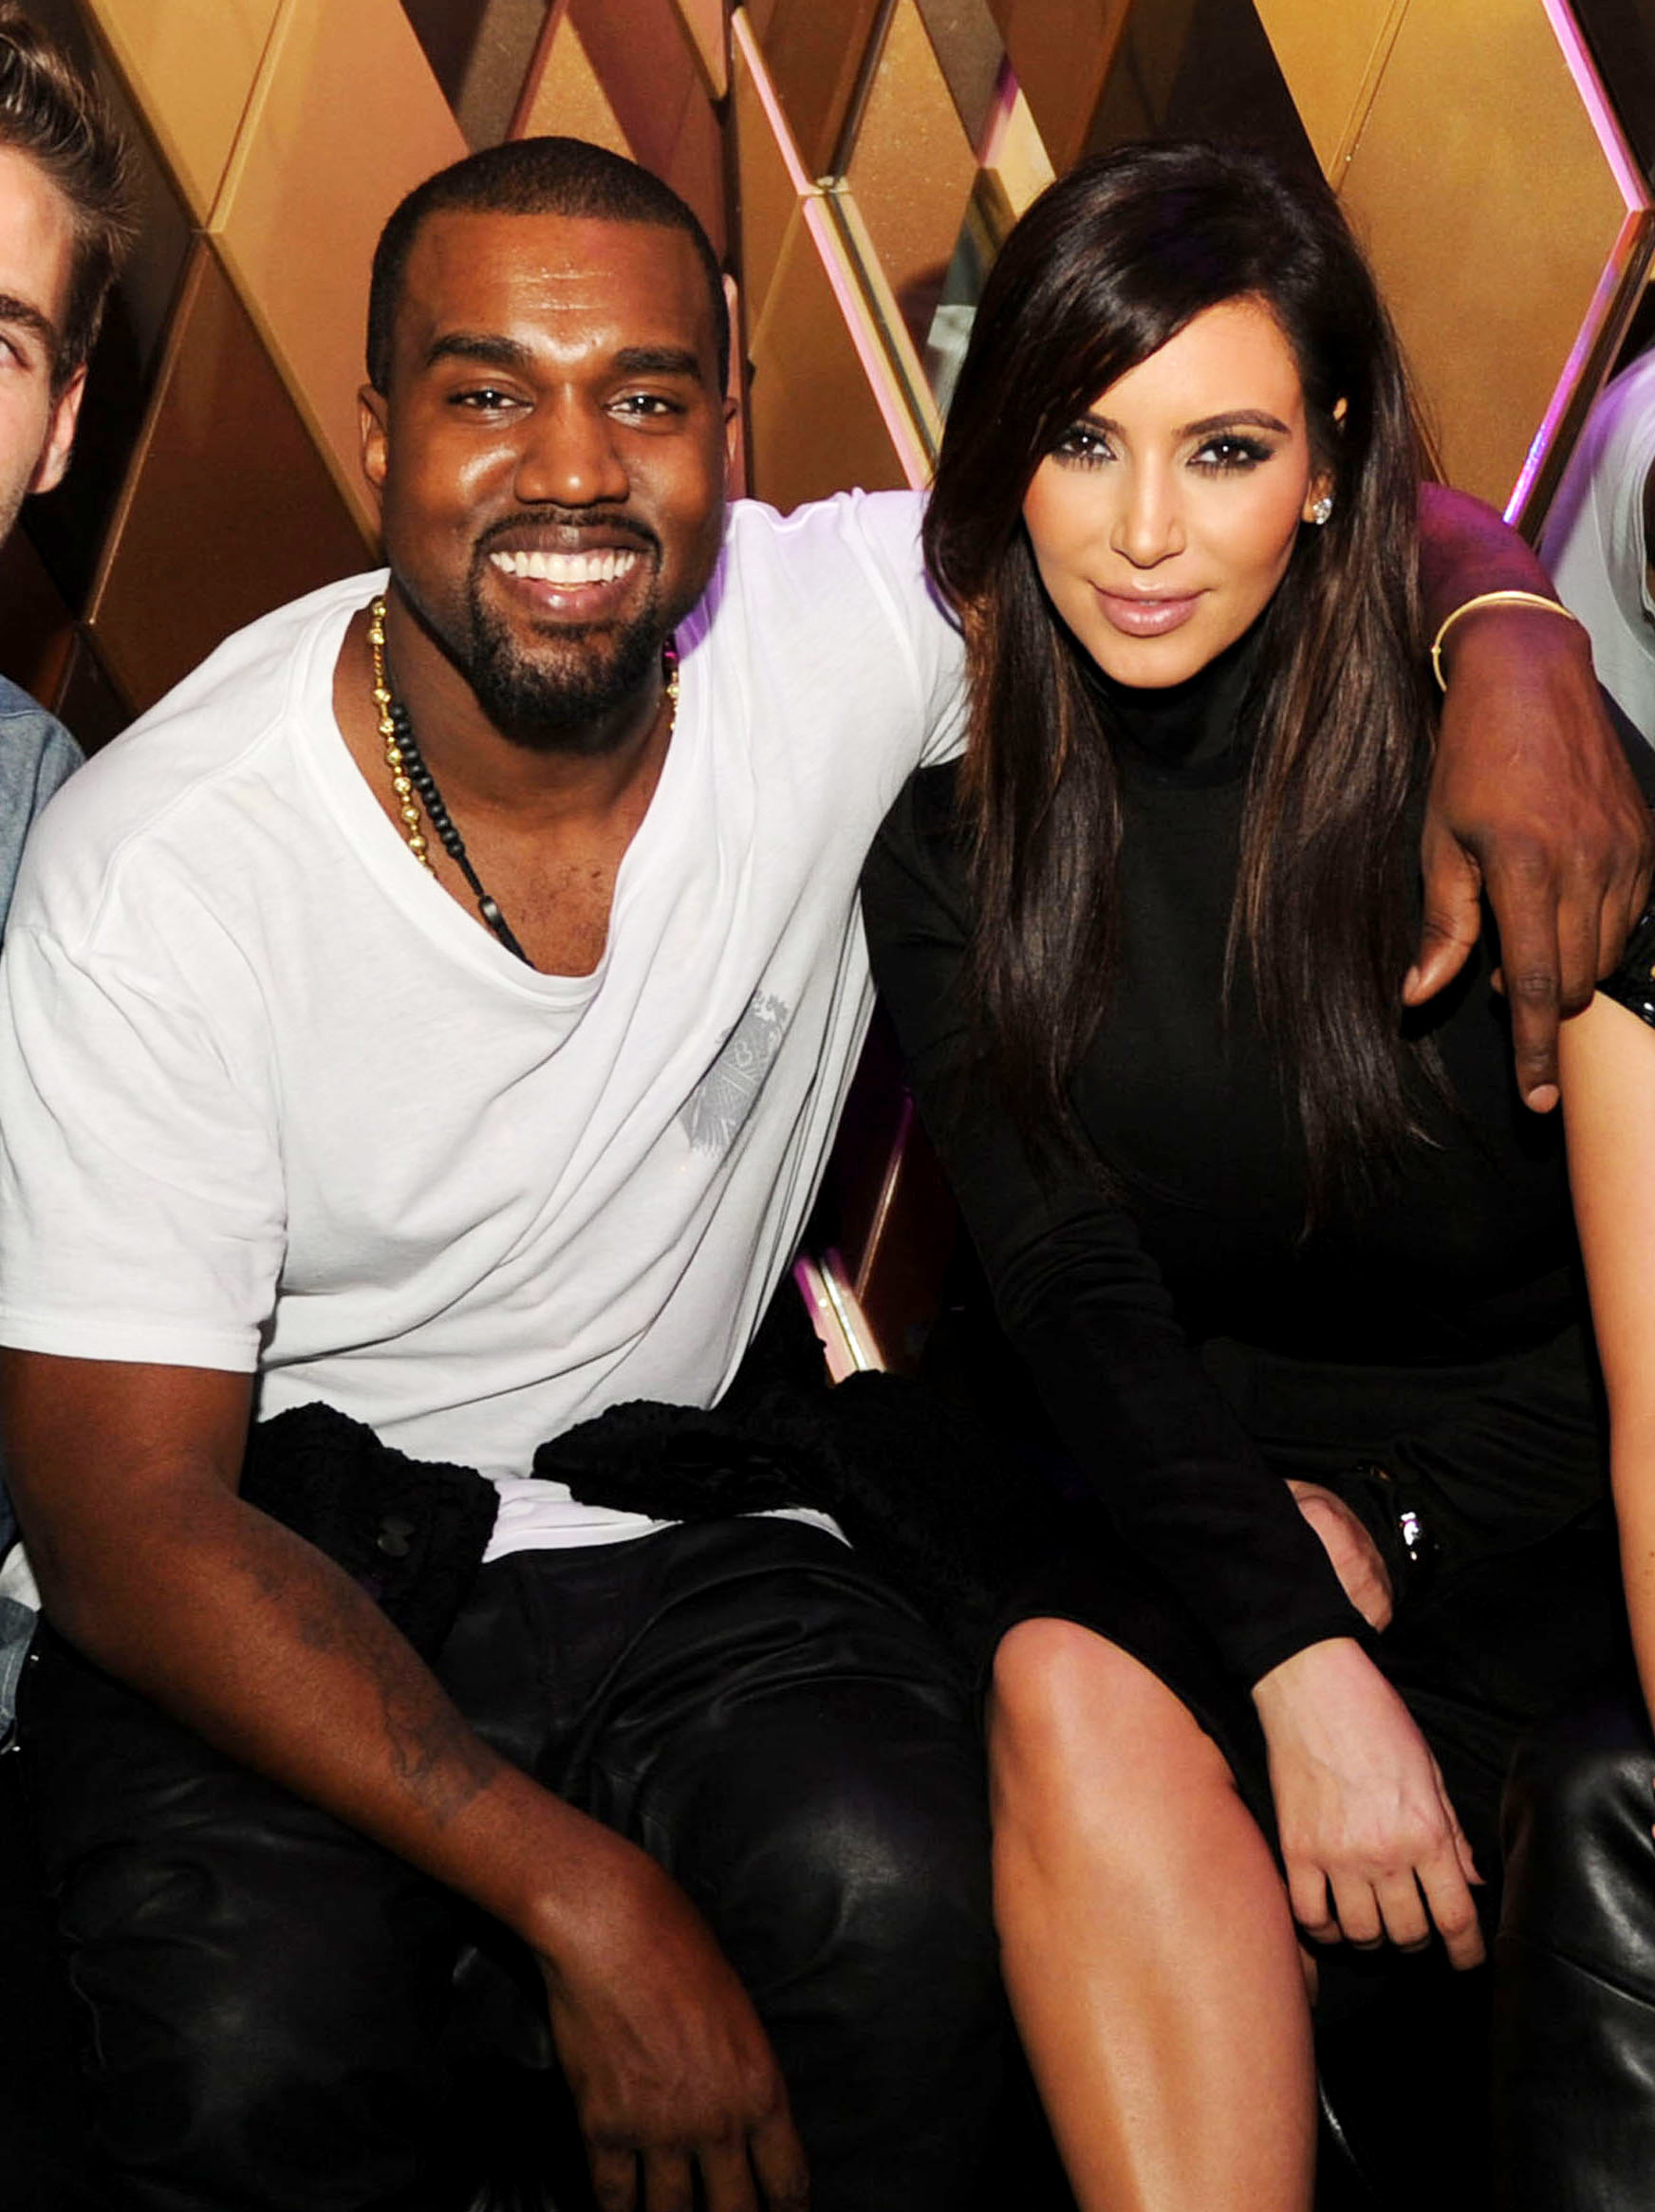 Kanye West white t shirt Kim kardashian black turtlenesck